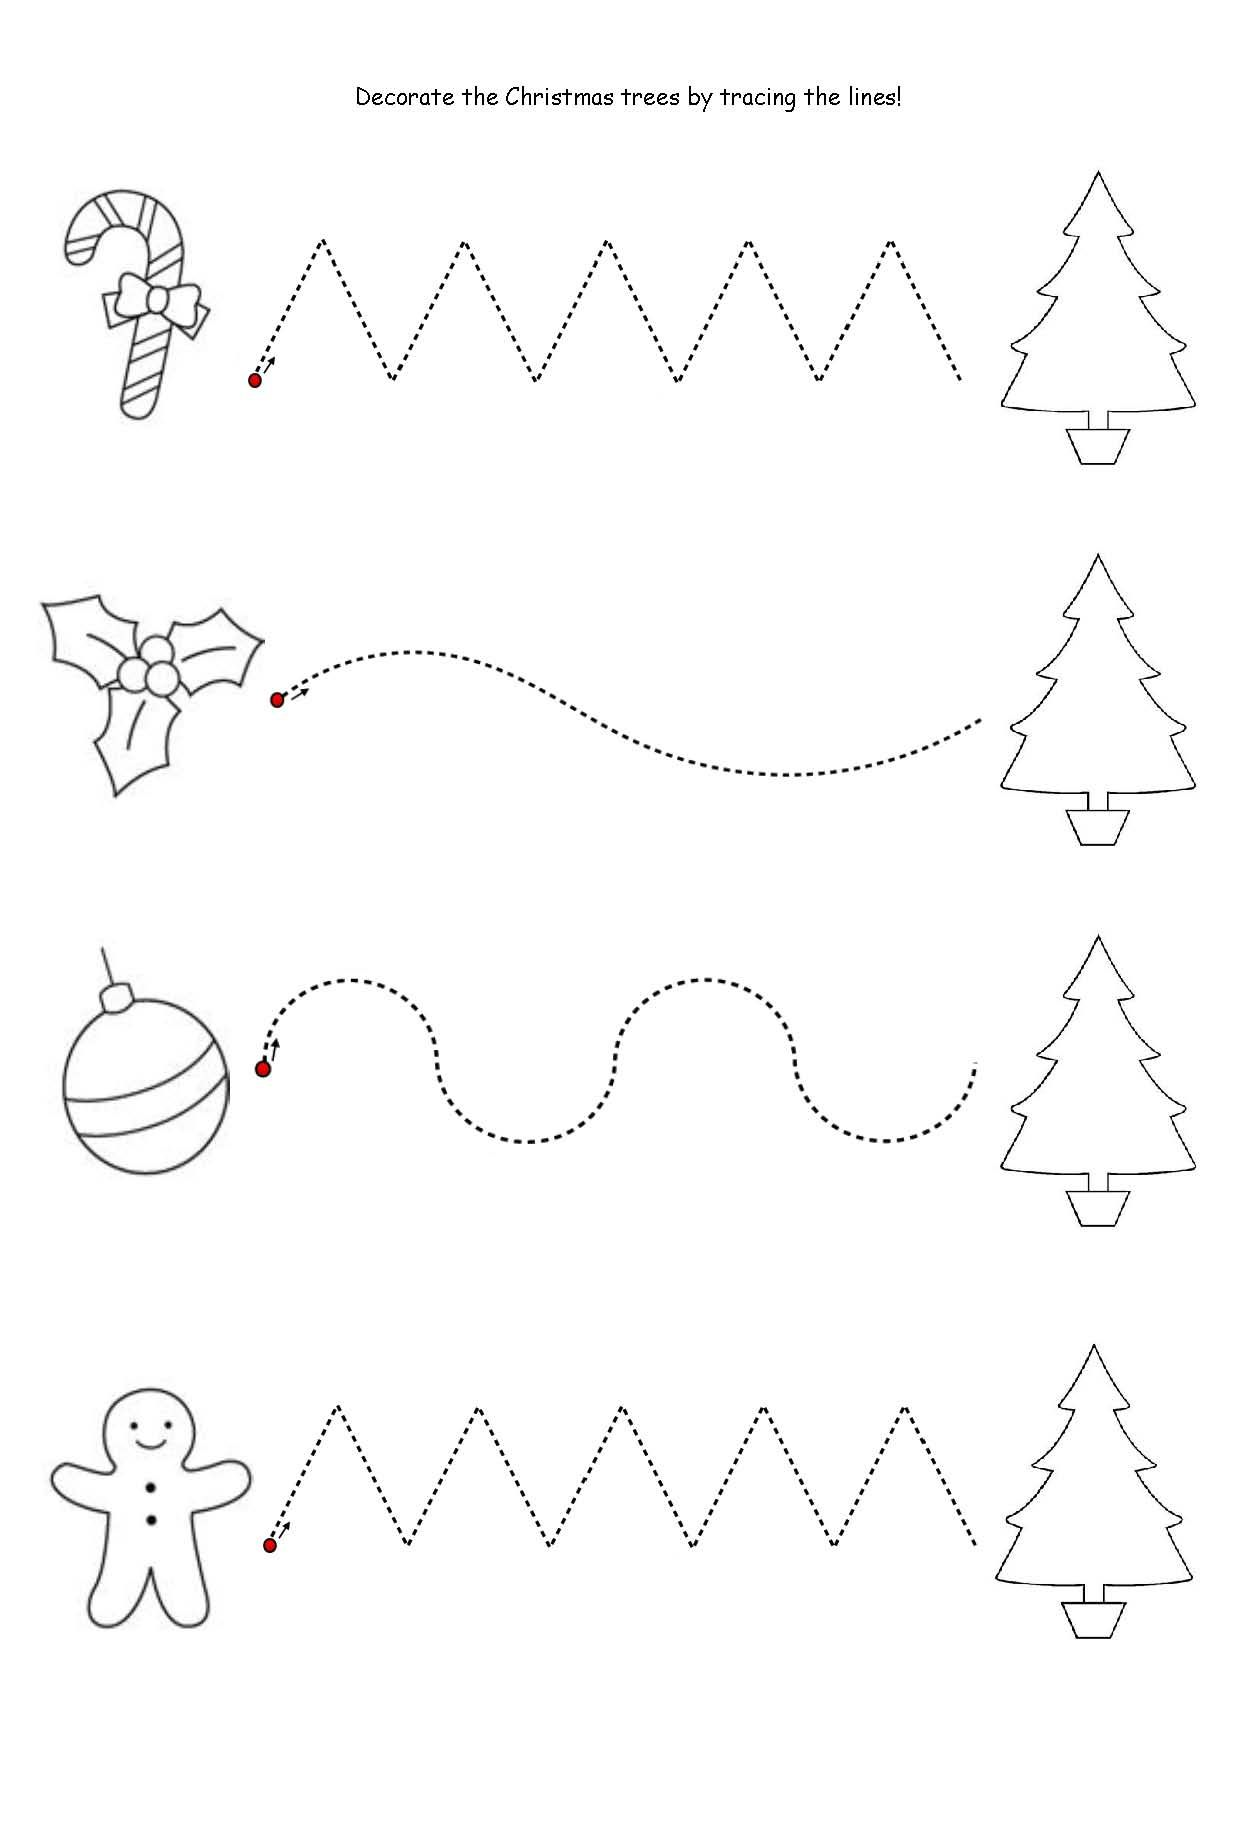 Get The Kids Tracing Lines To Match The Decoration To The Tree Once That S All Done Then Get